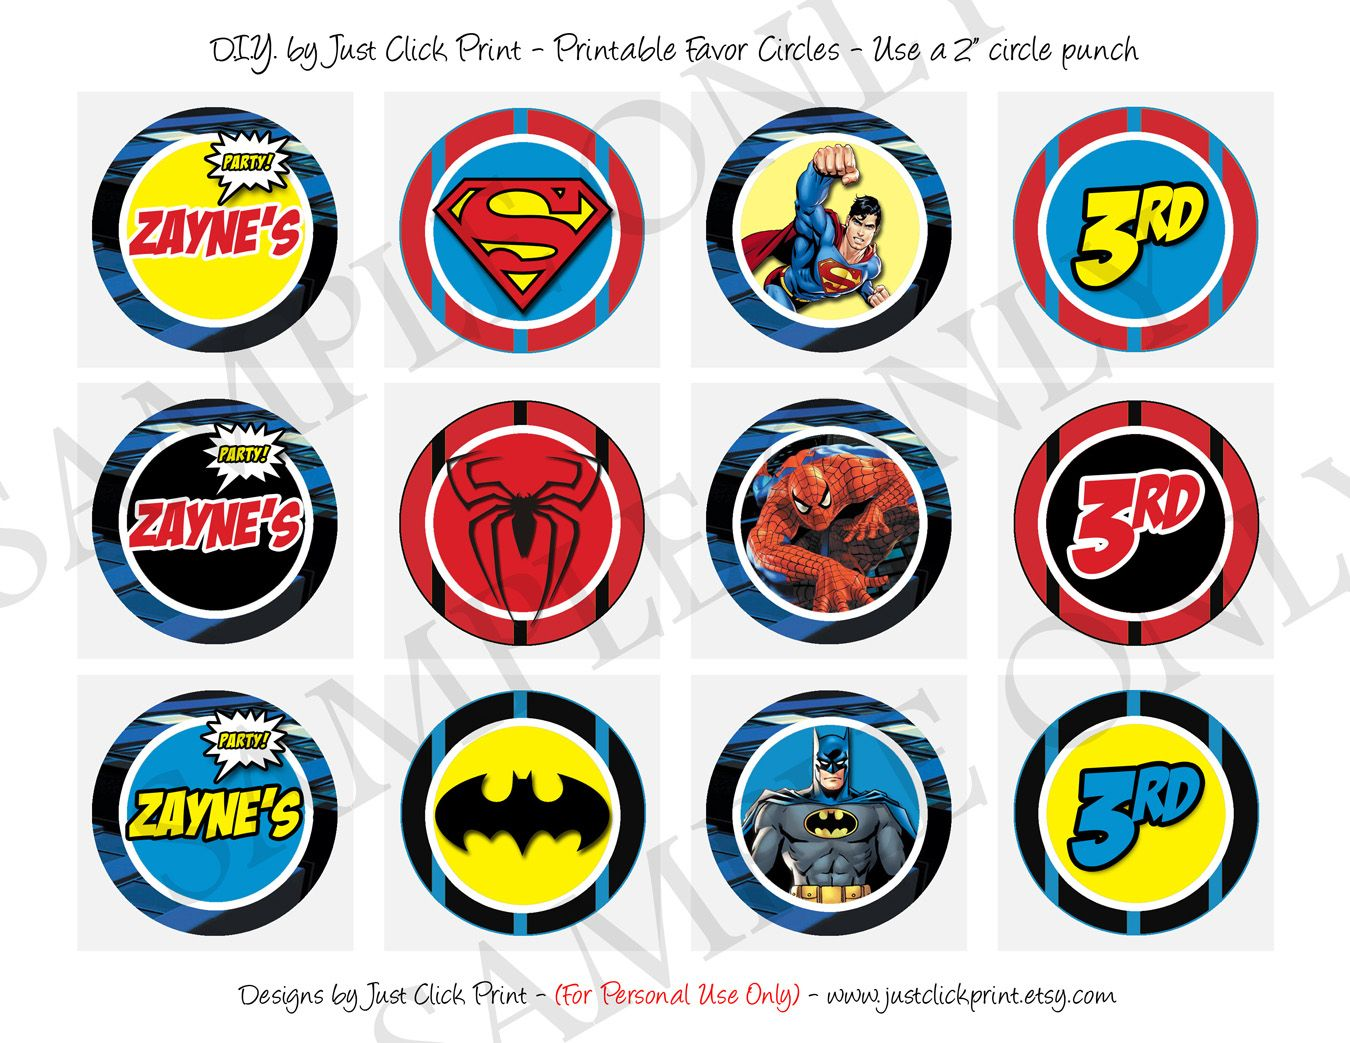 Amazing batman superman spiderman birthday invitations hd picture amazing batman superman spiderman birthday invitations hd picture ideas for your invitation voltagebd Gallery